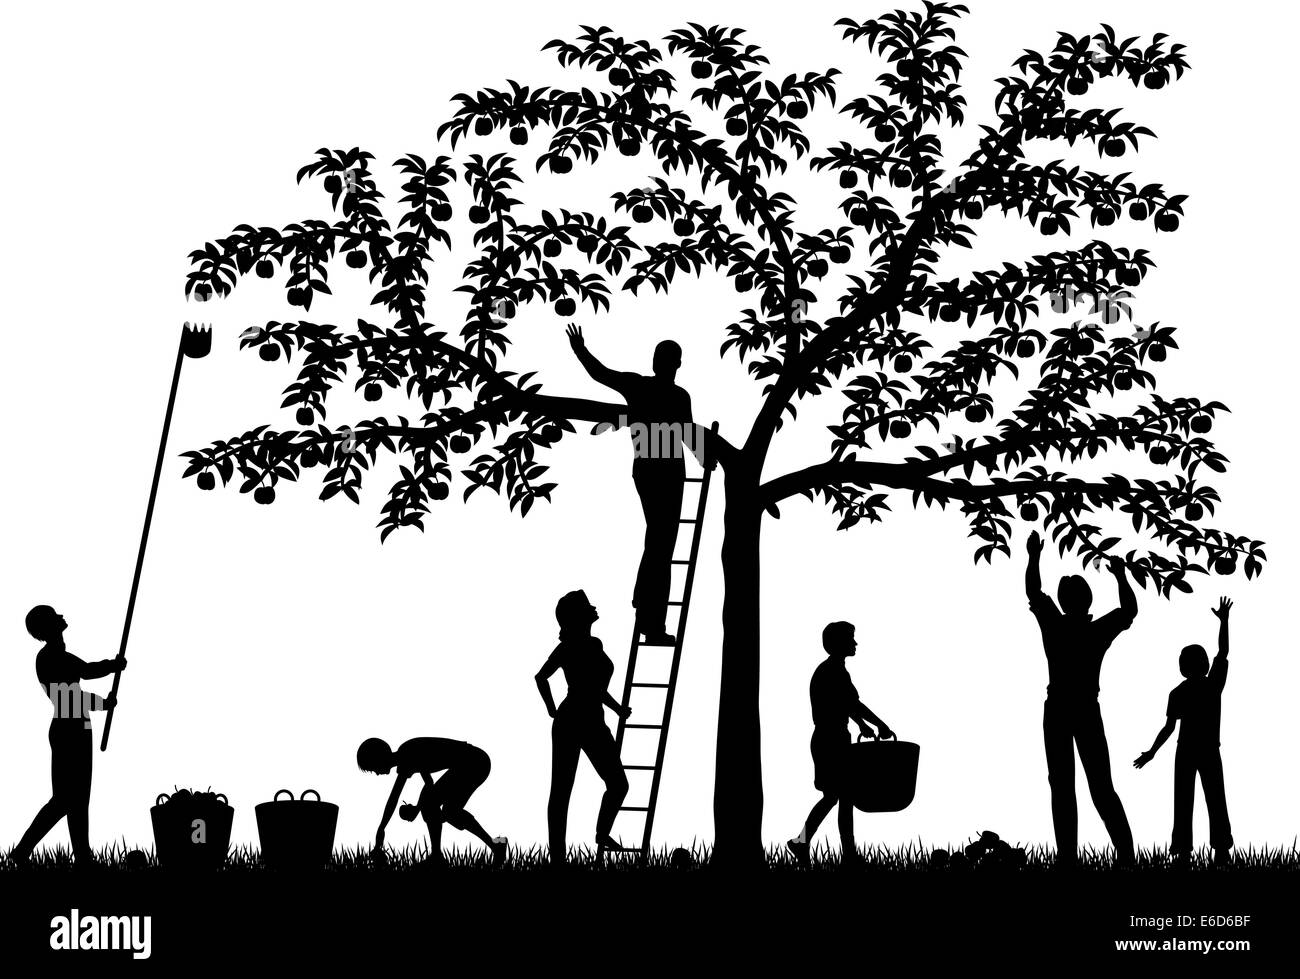 Editable vector silhouettes of a family harvesting apples from a tree with people and fruit as separate objects - Stock Vector